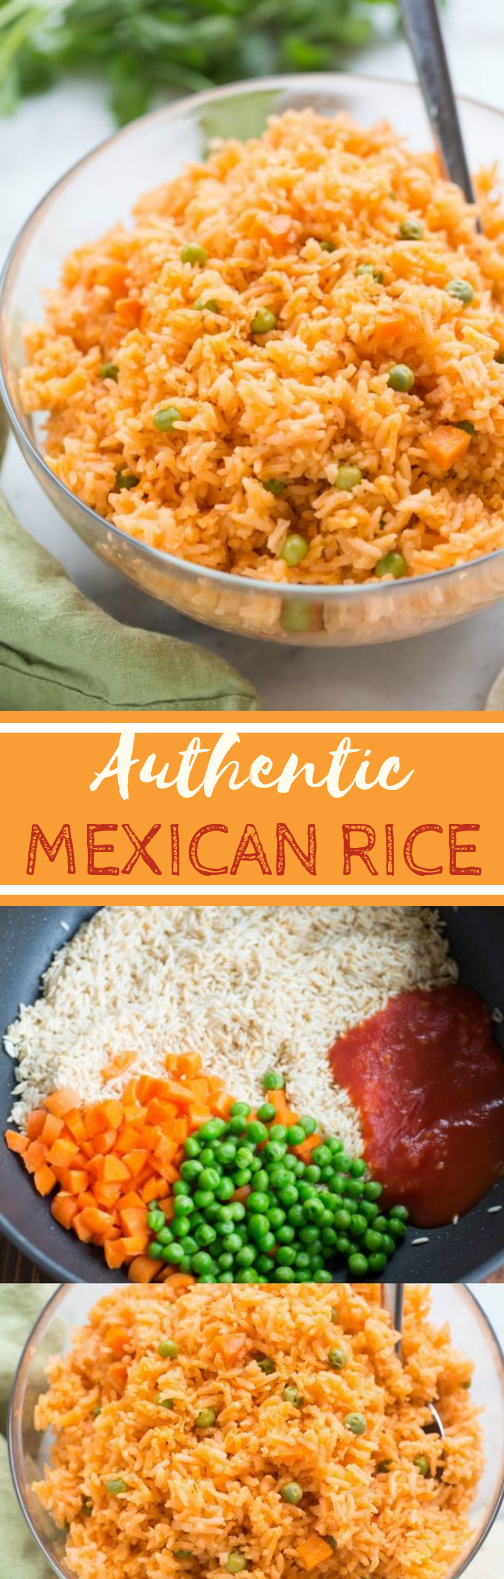 Authentic Mexican Rice #vegetarian #sidedish